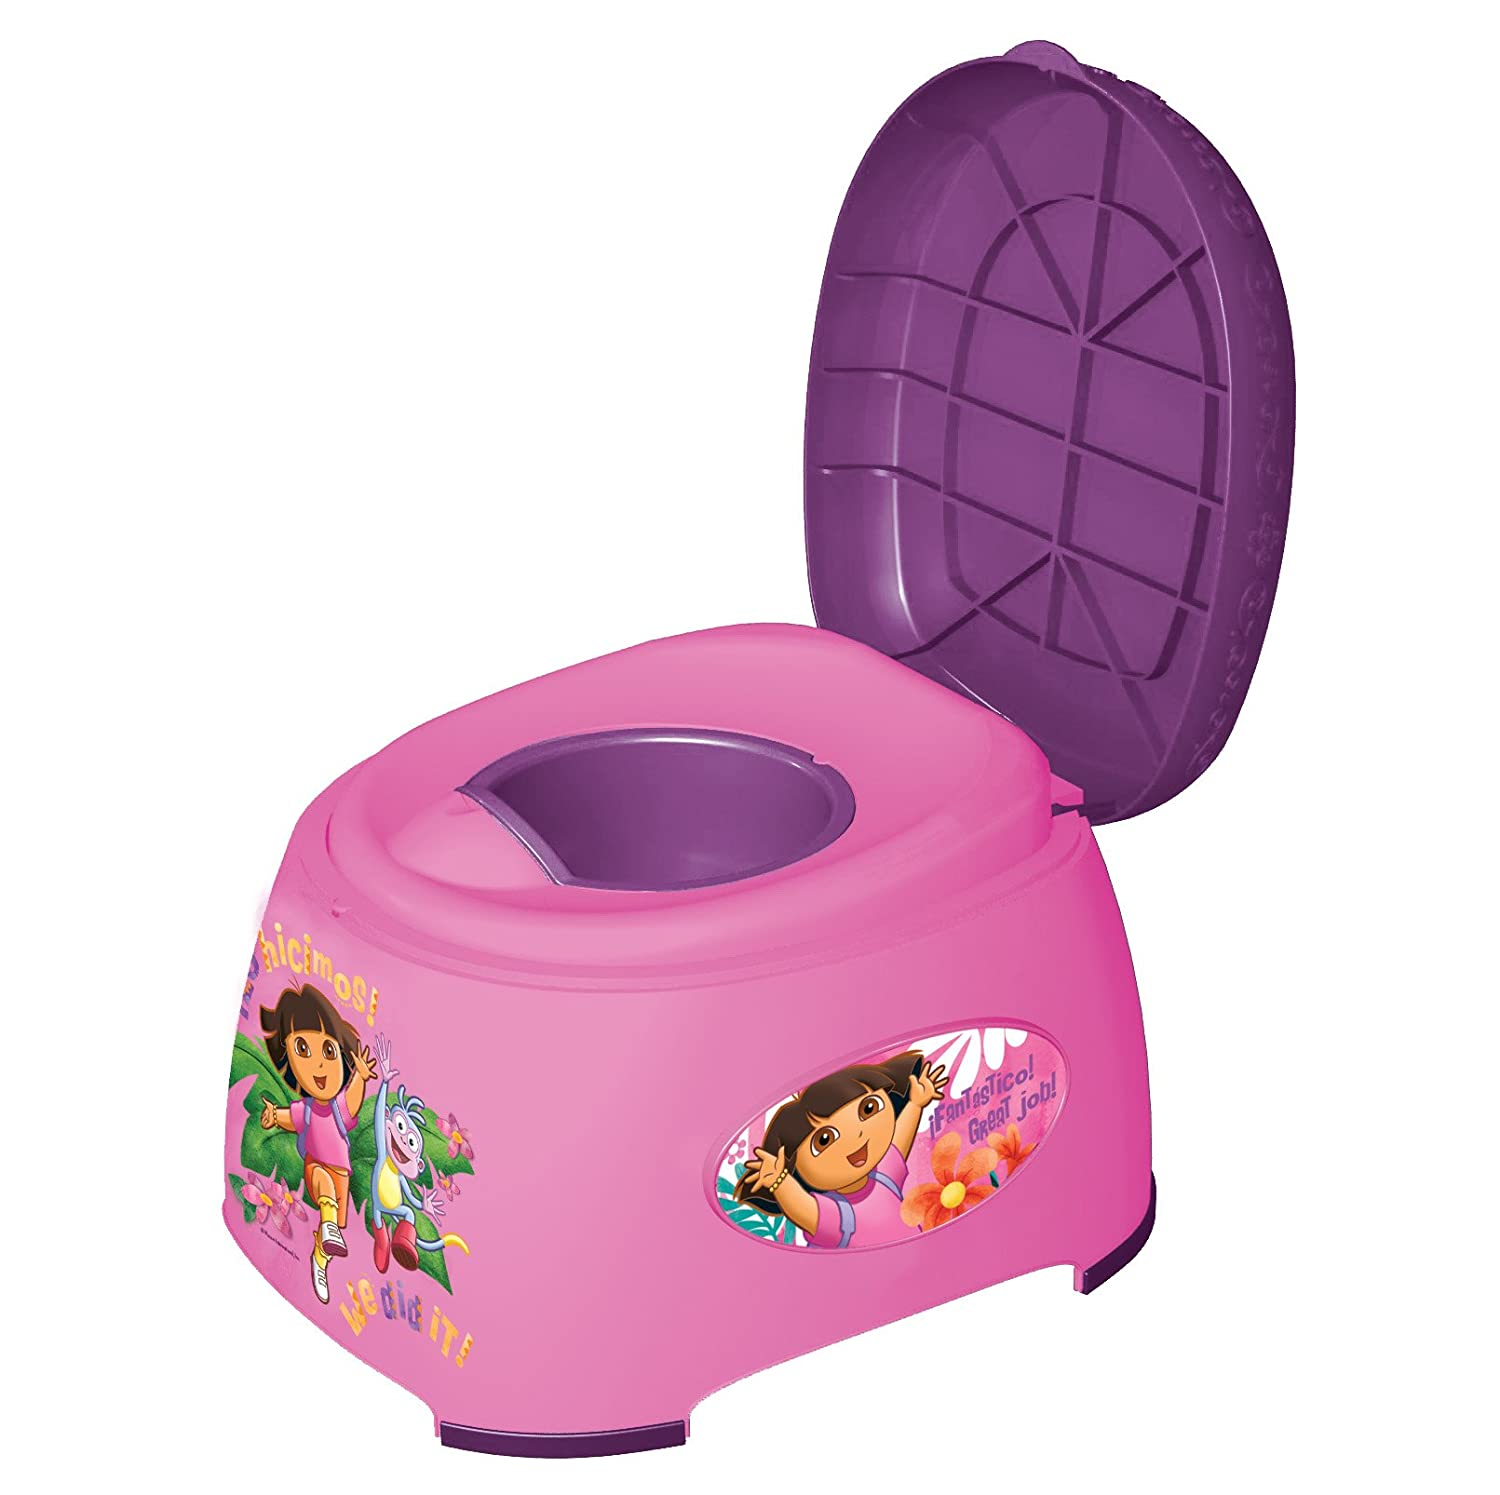 Nickelodeon Paw Patrol 3-In-1 Potty Trainer Ginsey Home Solutions 58511